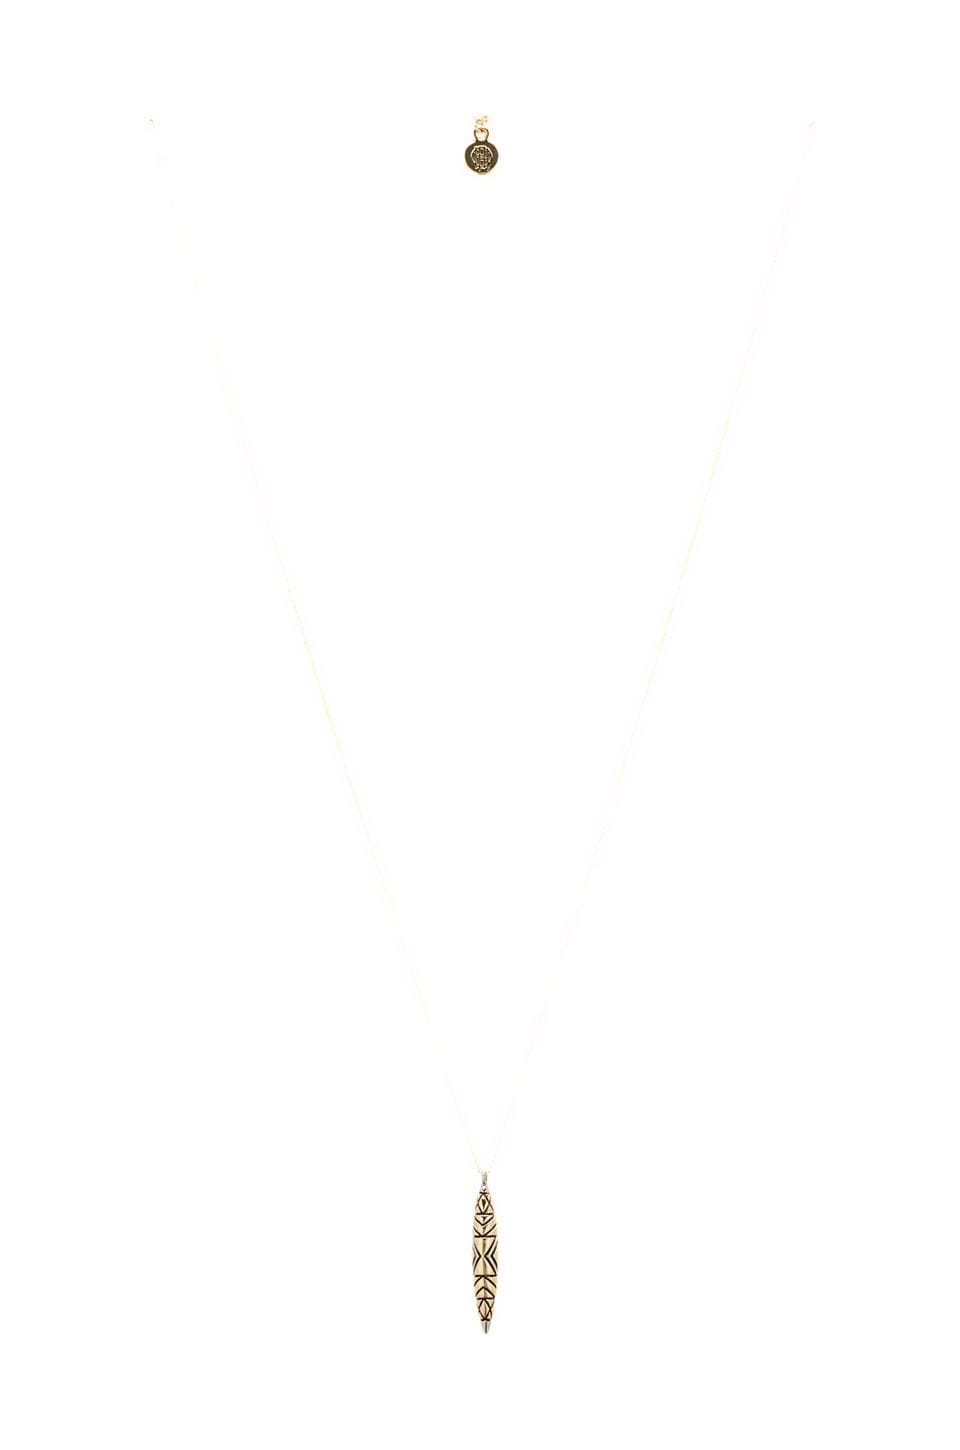 House of Harlow 1960 House of Harlow Tribal Totem Pendant Necklace in Two Tone